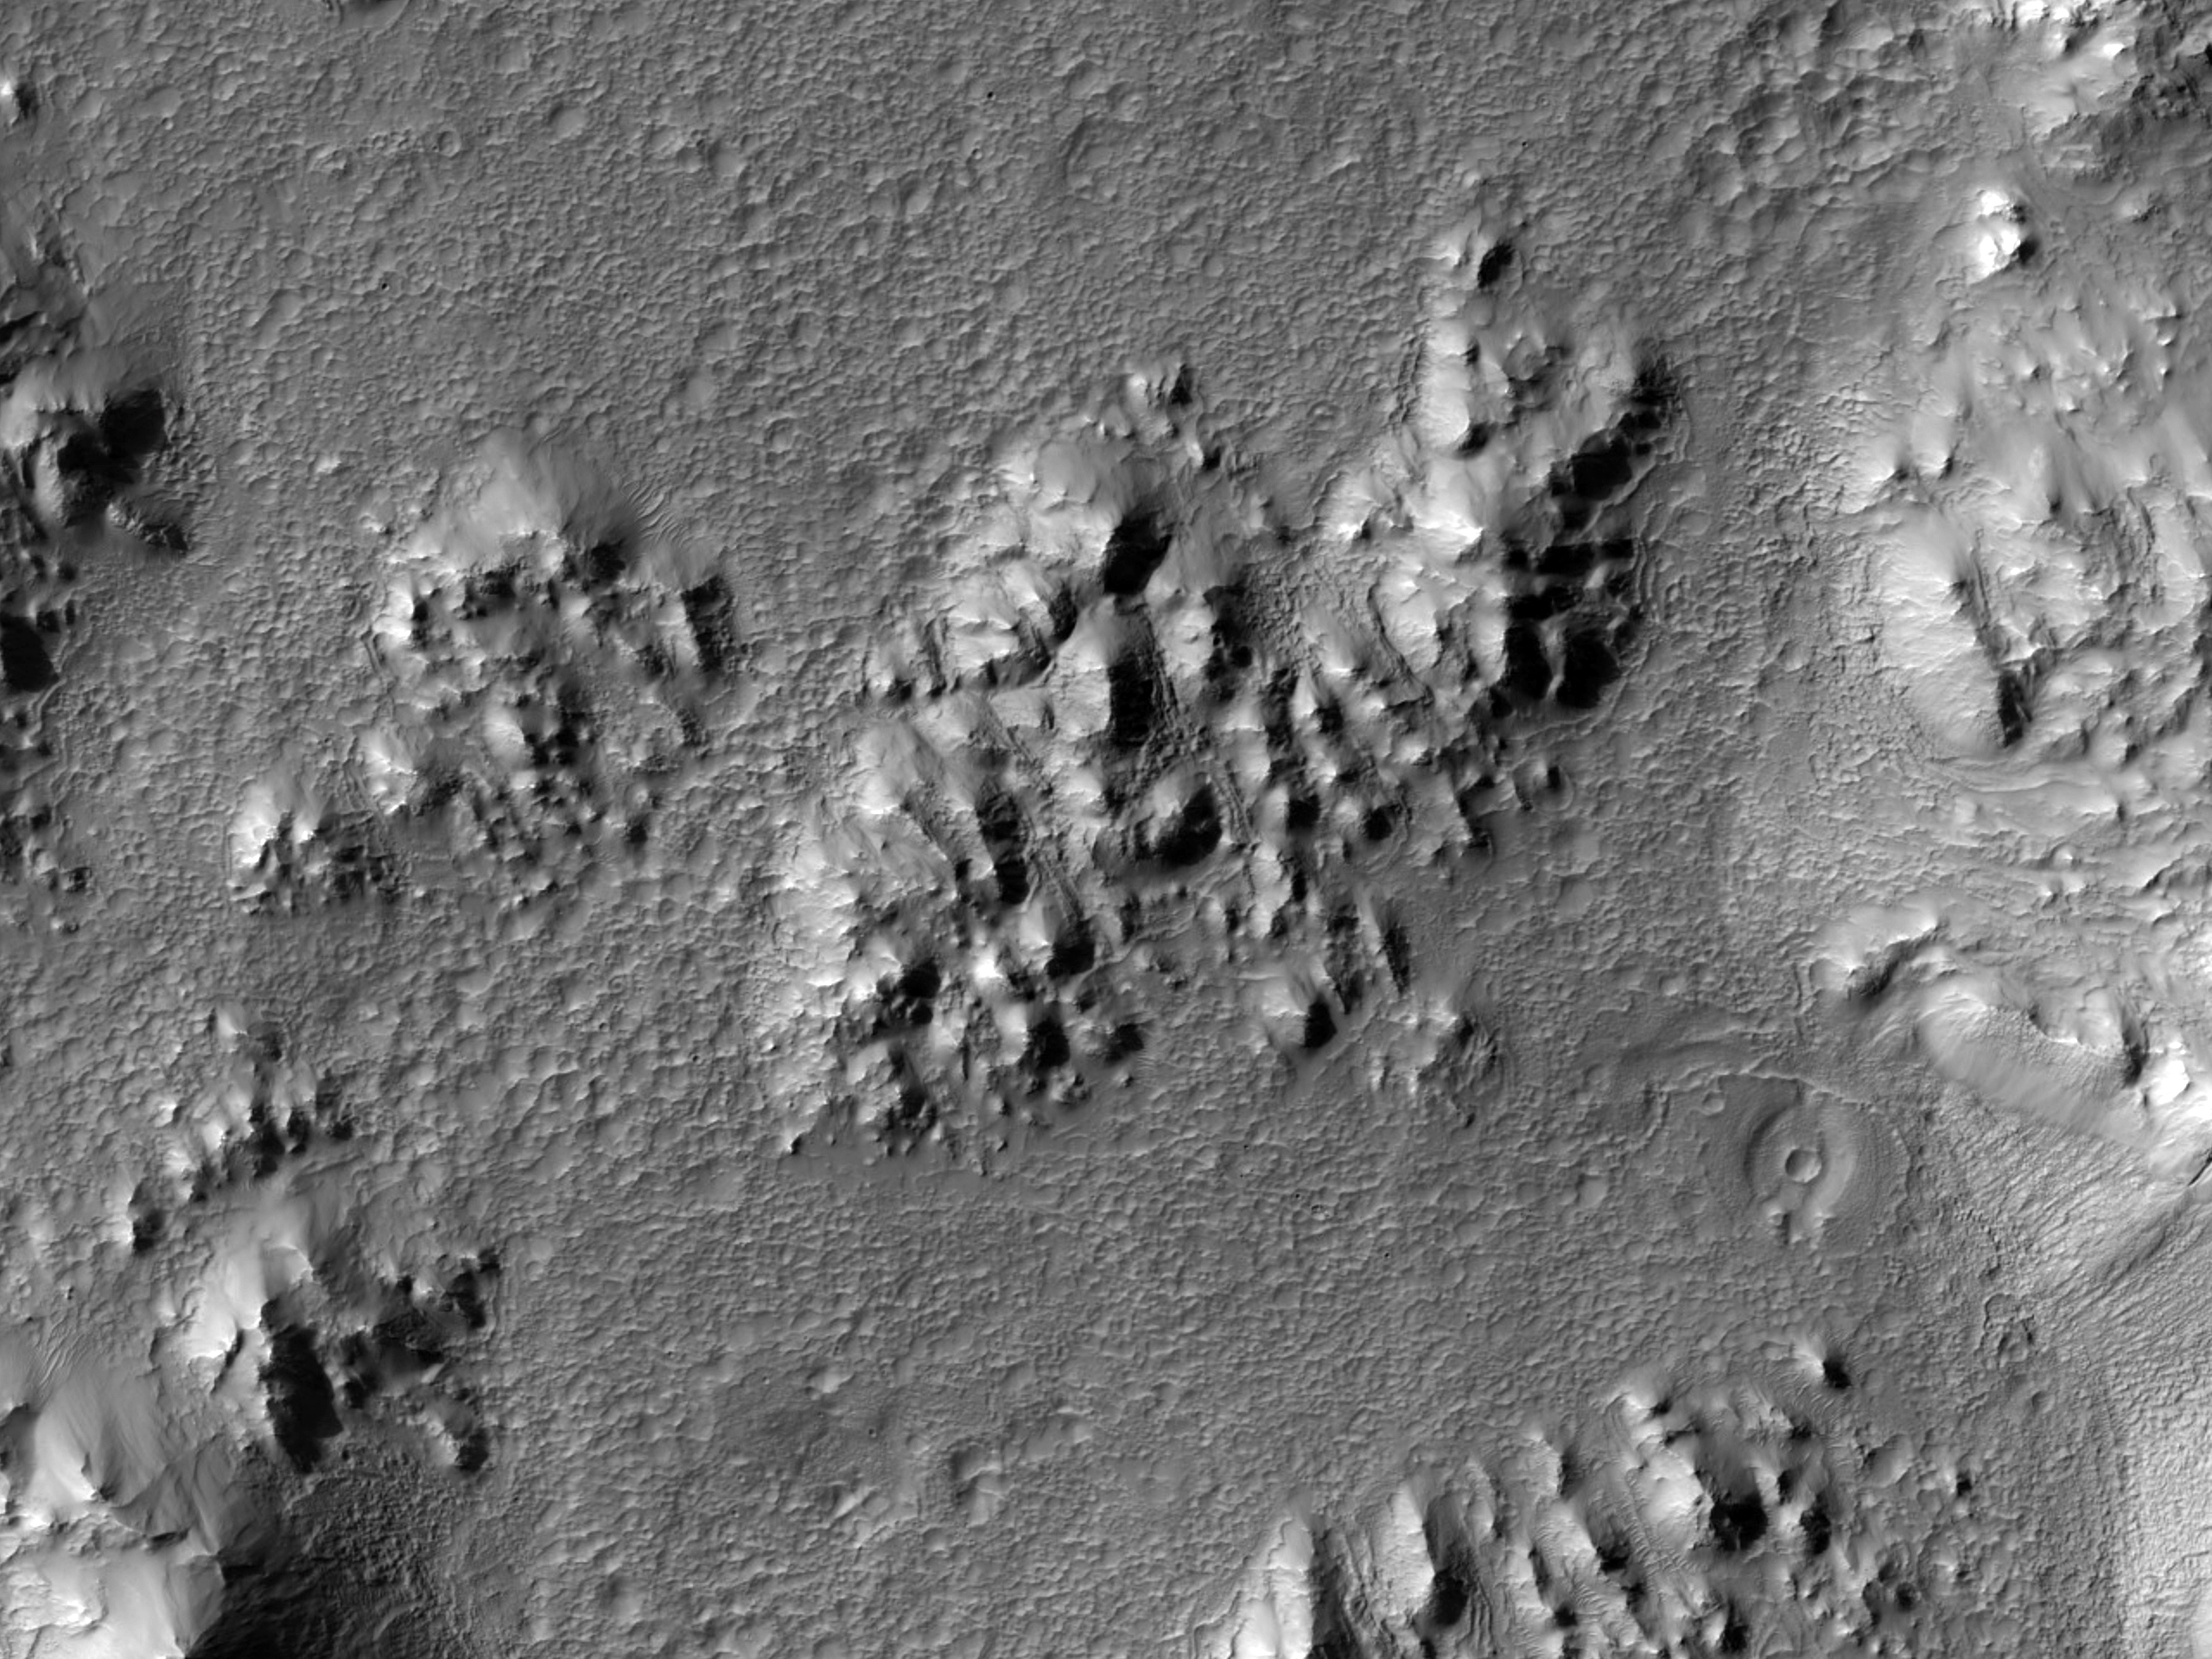 Hale Crater Ejecta